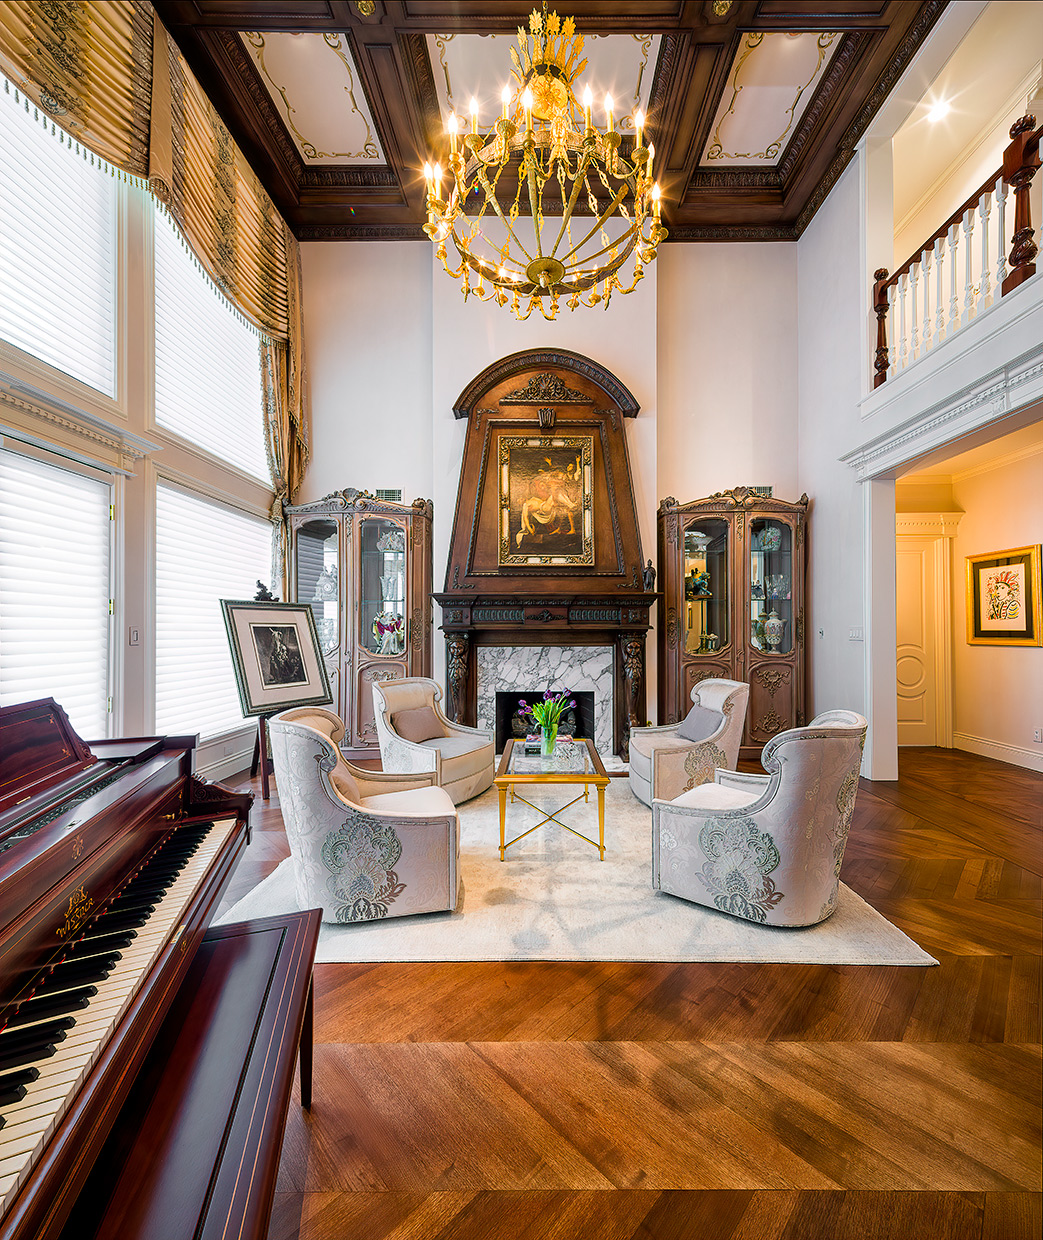 Interior Design by Janus Lazaris, ASID Designer, Houston, Texas